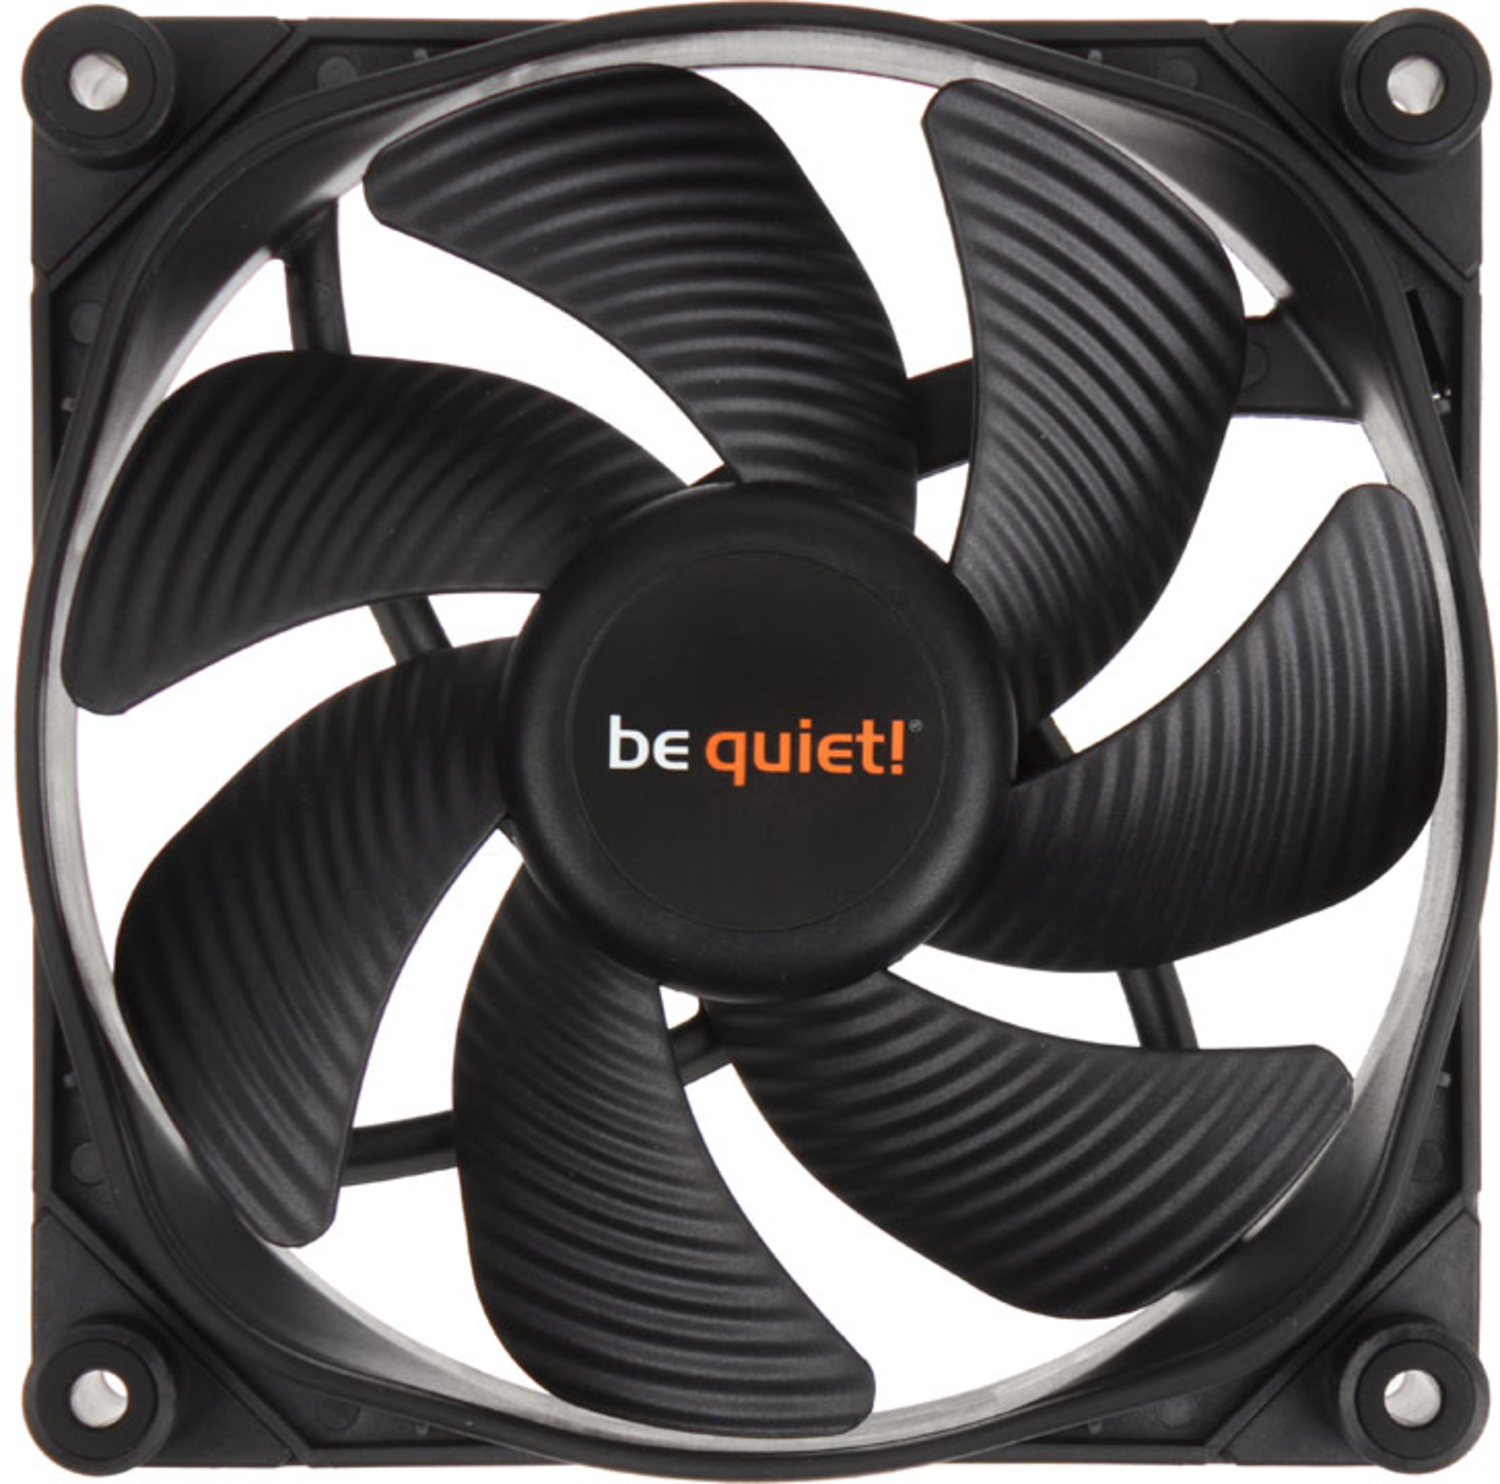 be quiet! - Ventoinha be quiet! Silent Wings 3 PWM 120mm